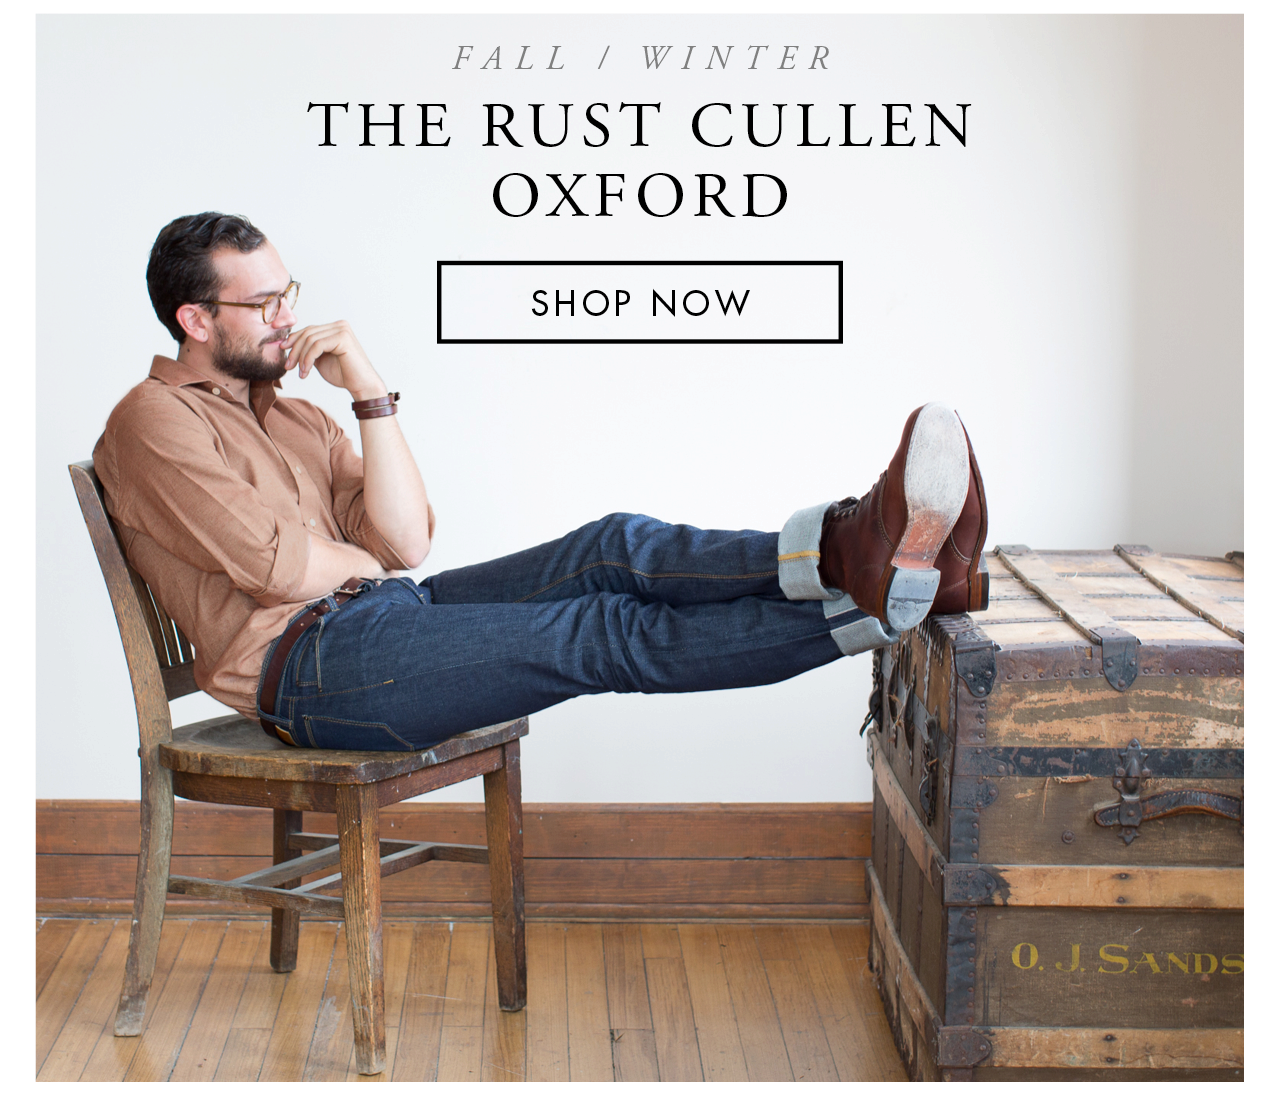 The Rust Cullen Oxford